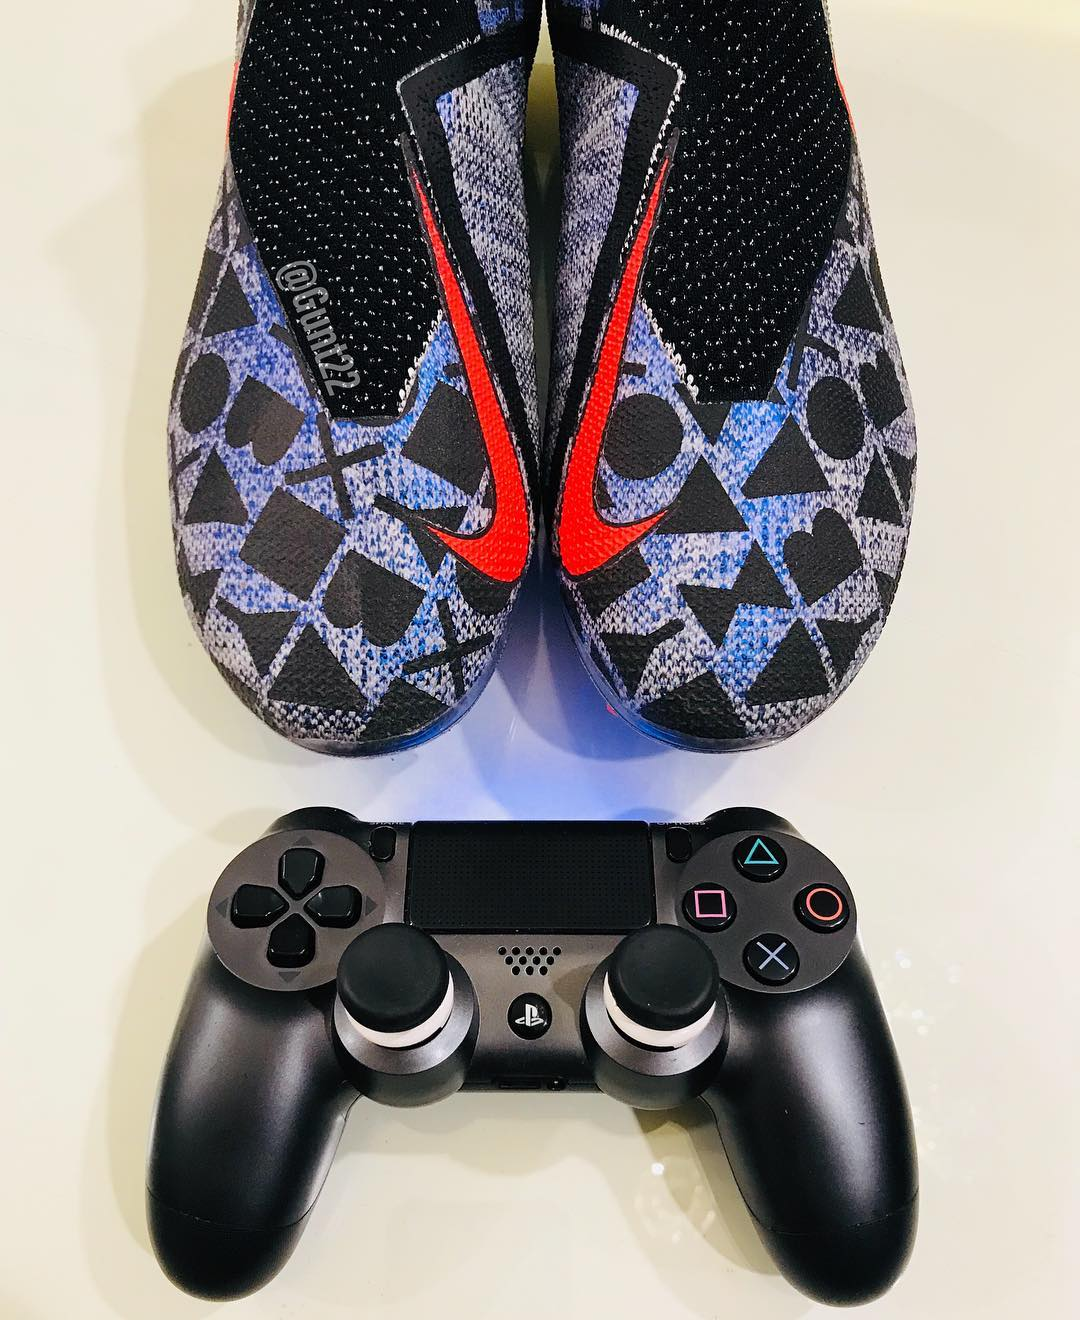 three unreleased nike phantom vision elite soccer cleat football boot colorways leaked upcoming ea sports limited edition news